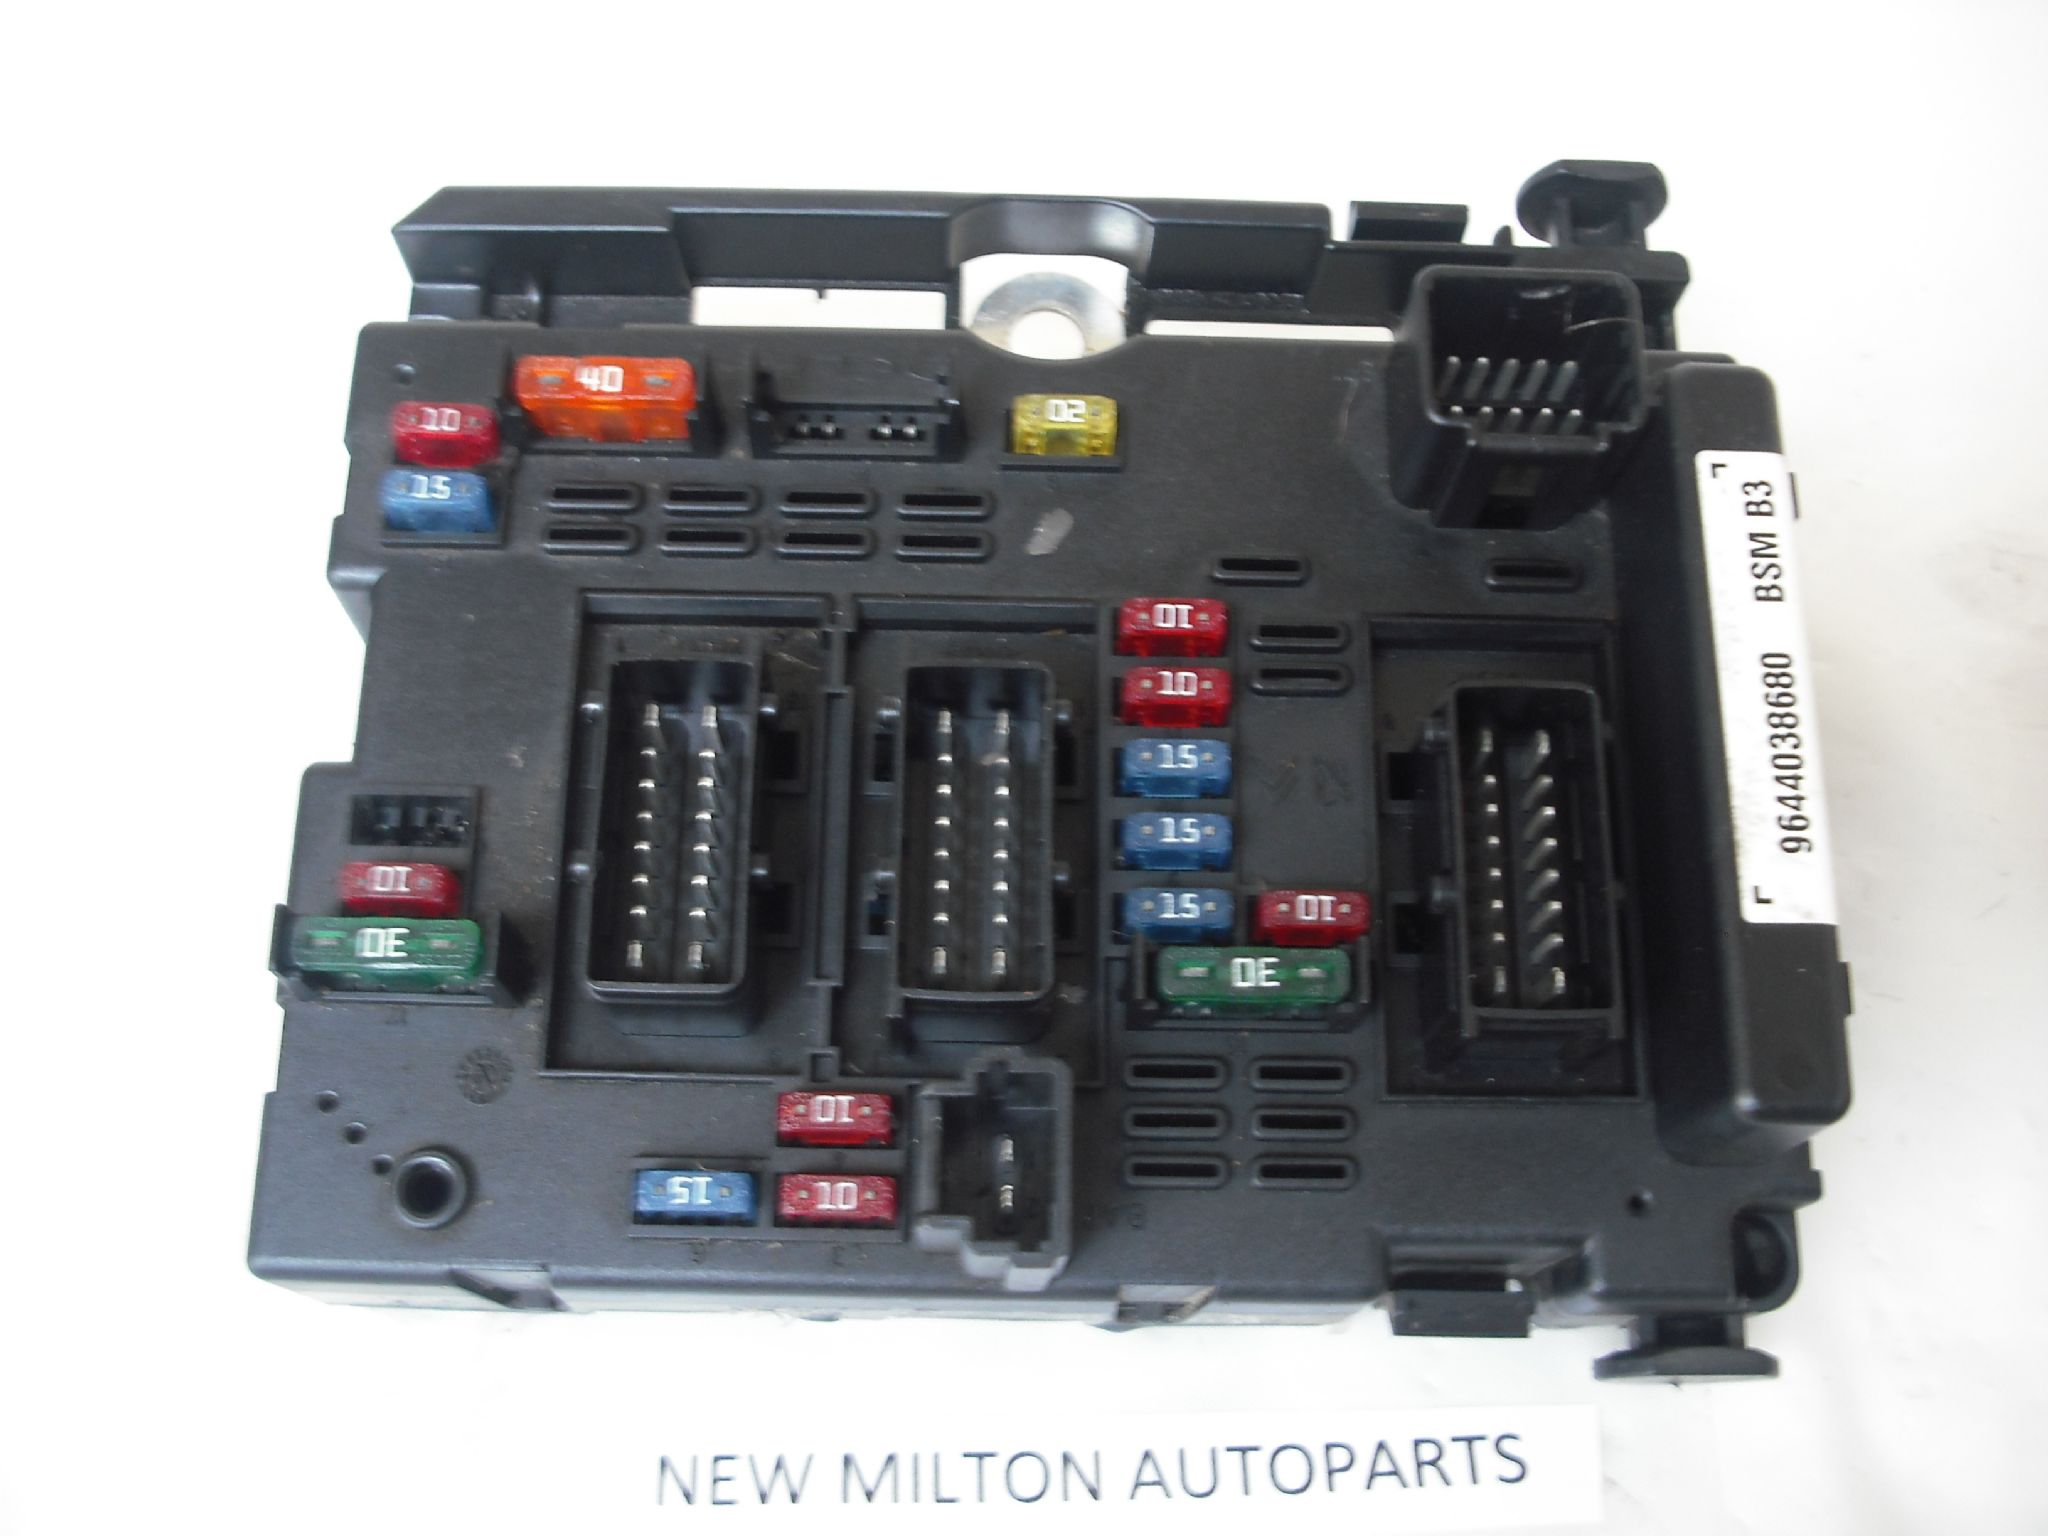 Peugeot 307 Partner Citroen Berlingo Fuse Box Controller 9644038680 2004 Hyundai Tiburon Bsm B3 Sorry Out Of Stock